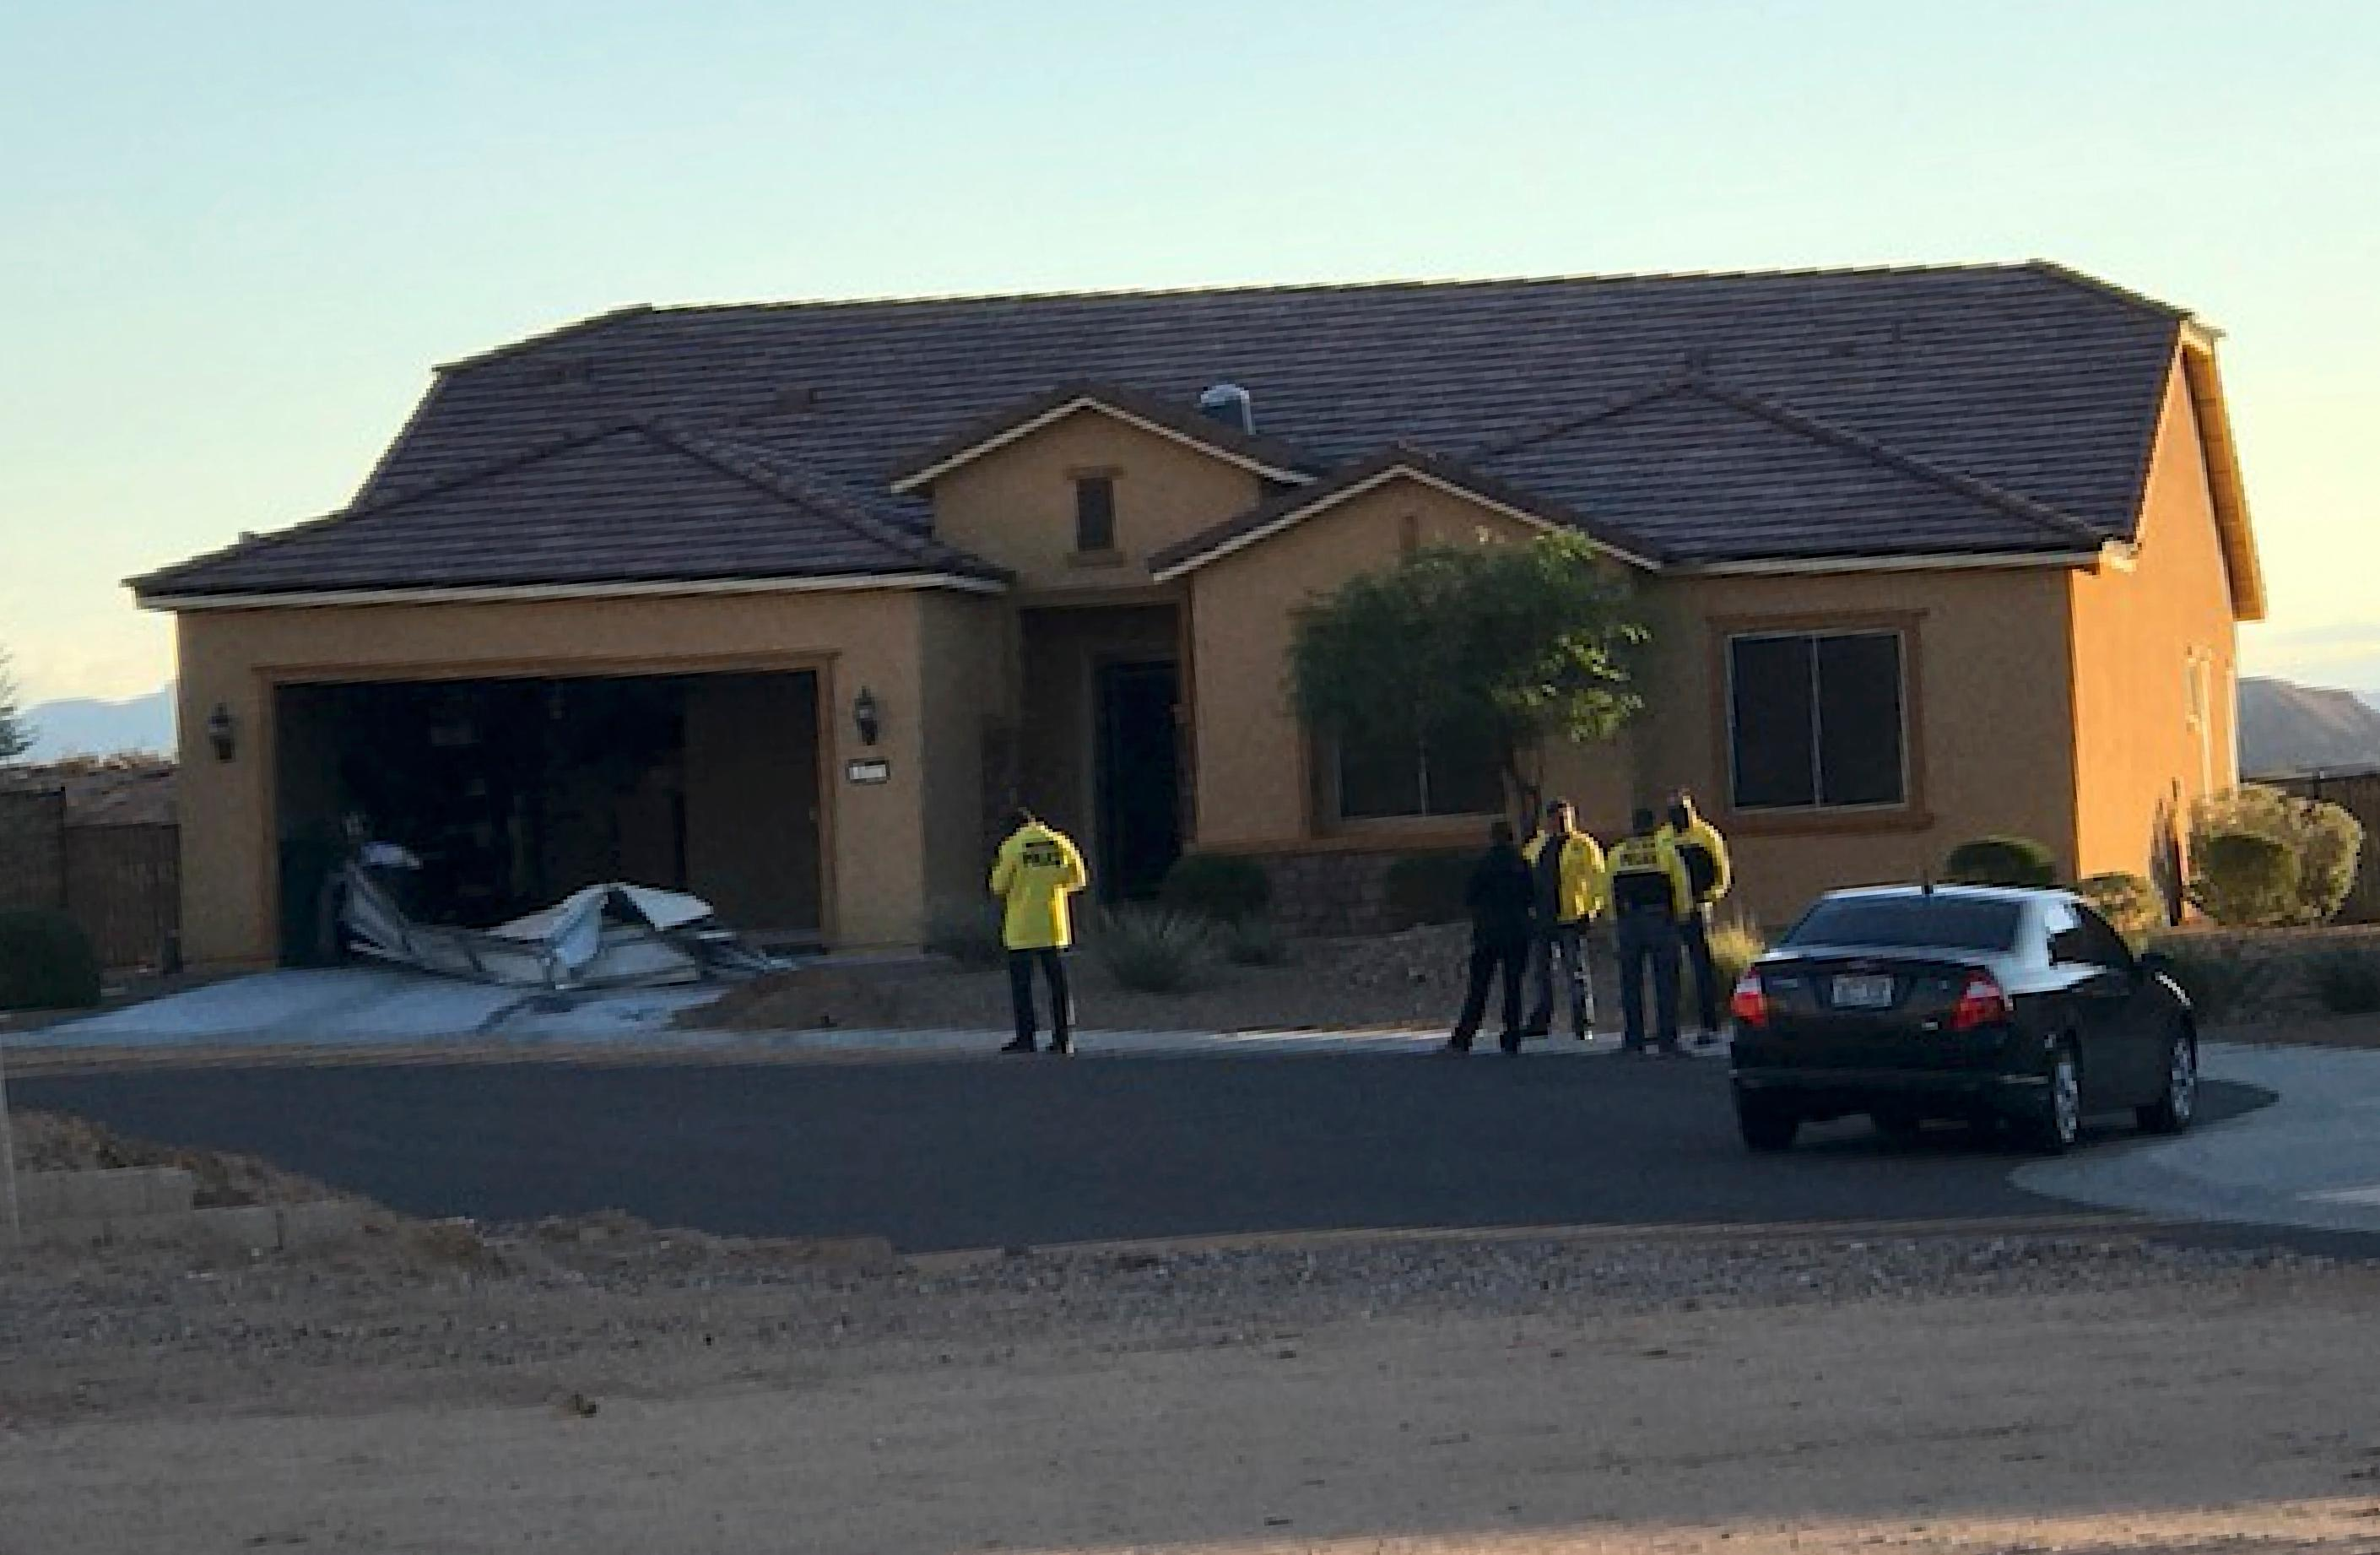 In this photo provided by the Mesquite, Nev., Police Department, police personnel stand outside the home of Stephen Paddock on Monday, Oct. 2, 2017, in Mesquite. Police identified Paddock as the gunman at a music festival Sunday evening. (Mesquite Police via AP)